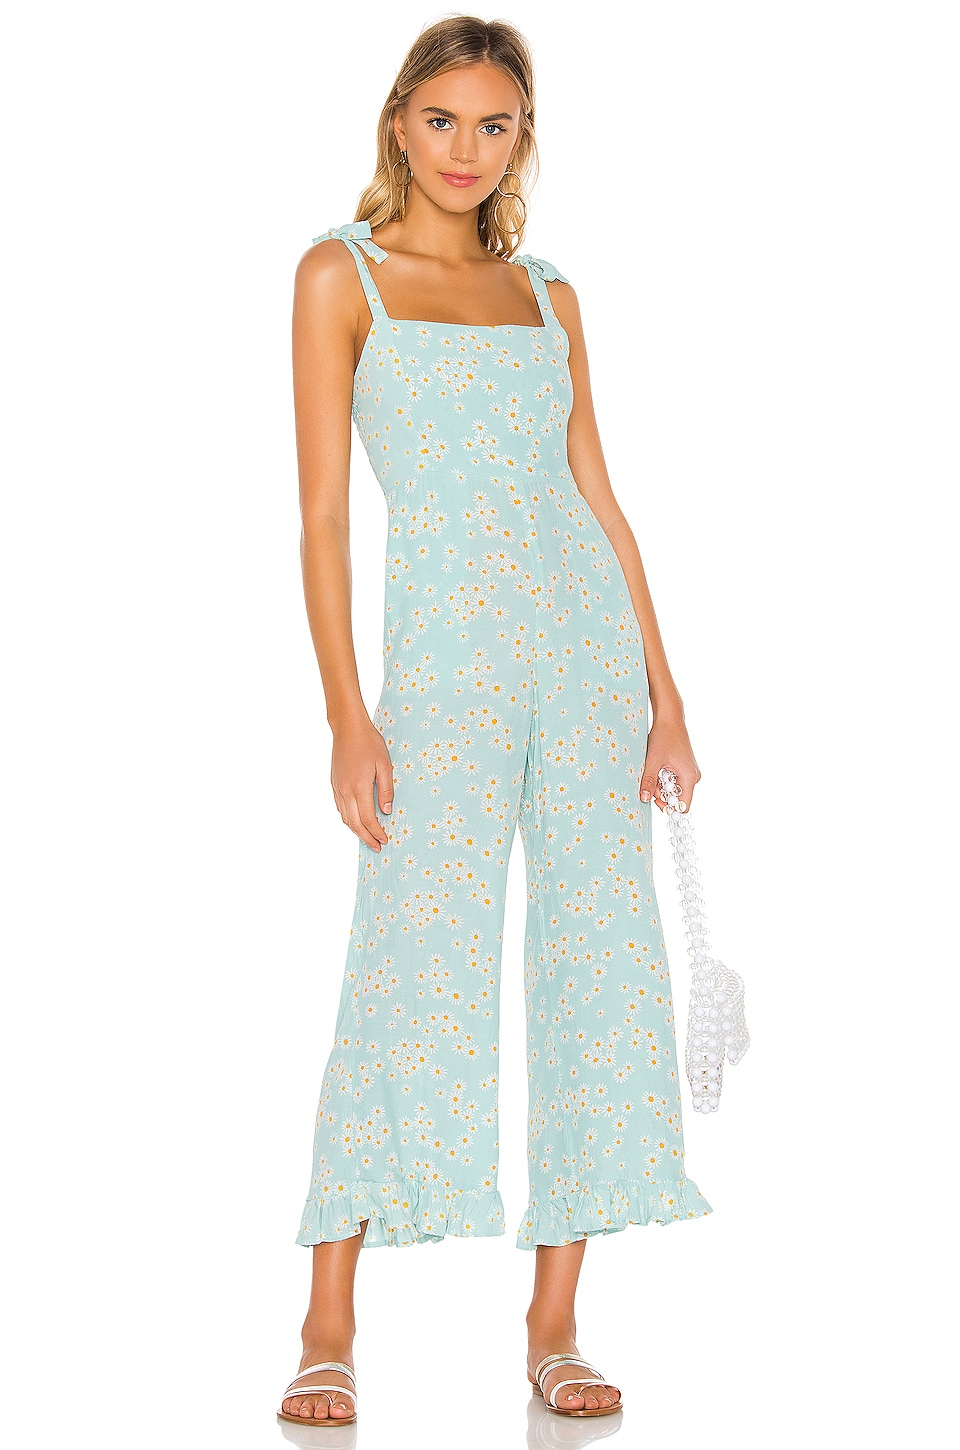 FAITHFULL THE BRAND Frankie Jumpsuit in Zhoe Floral